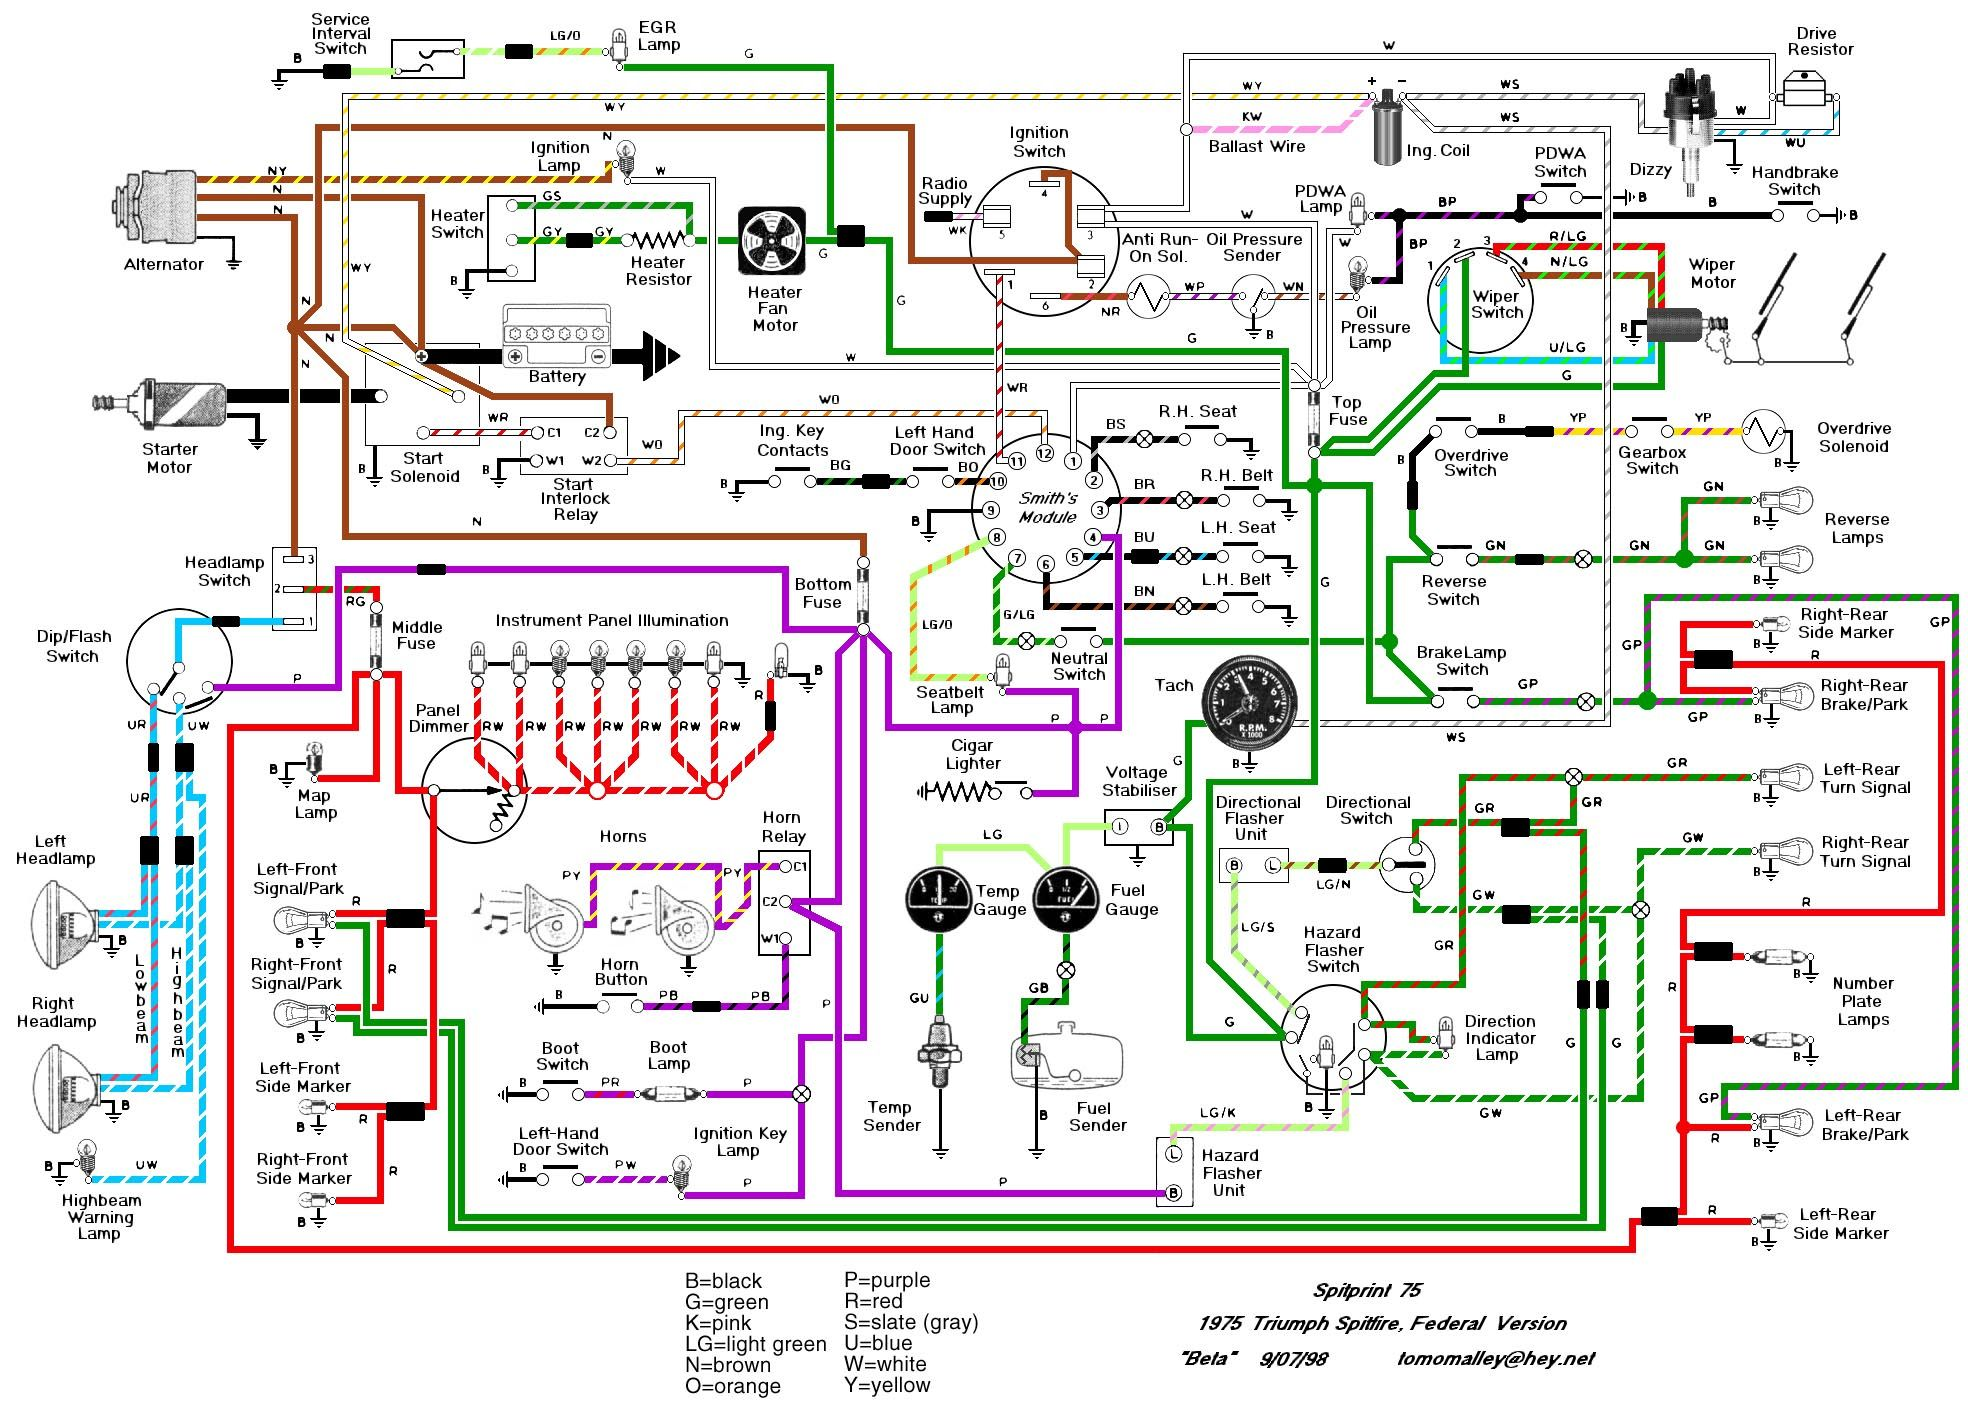 be29e78a9b223a9820997f058b4332e6 mgb coil wiring diagram starter wiring \u2022 wiring diagrams j  at readyjetset.co